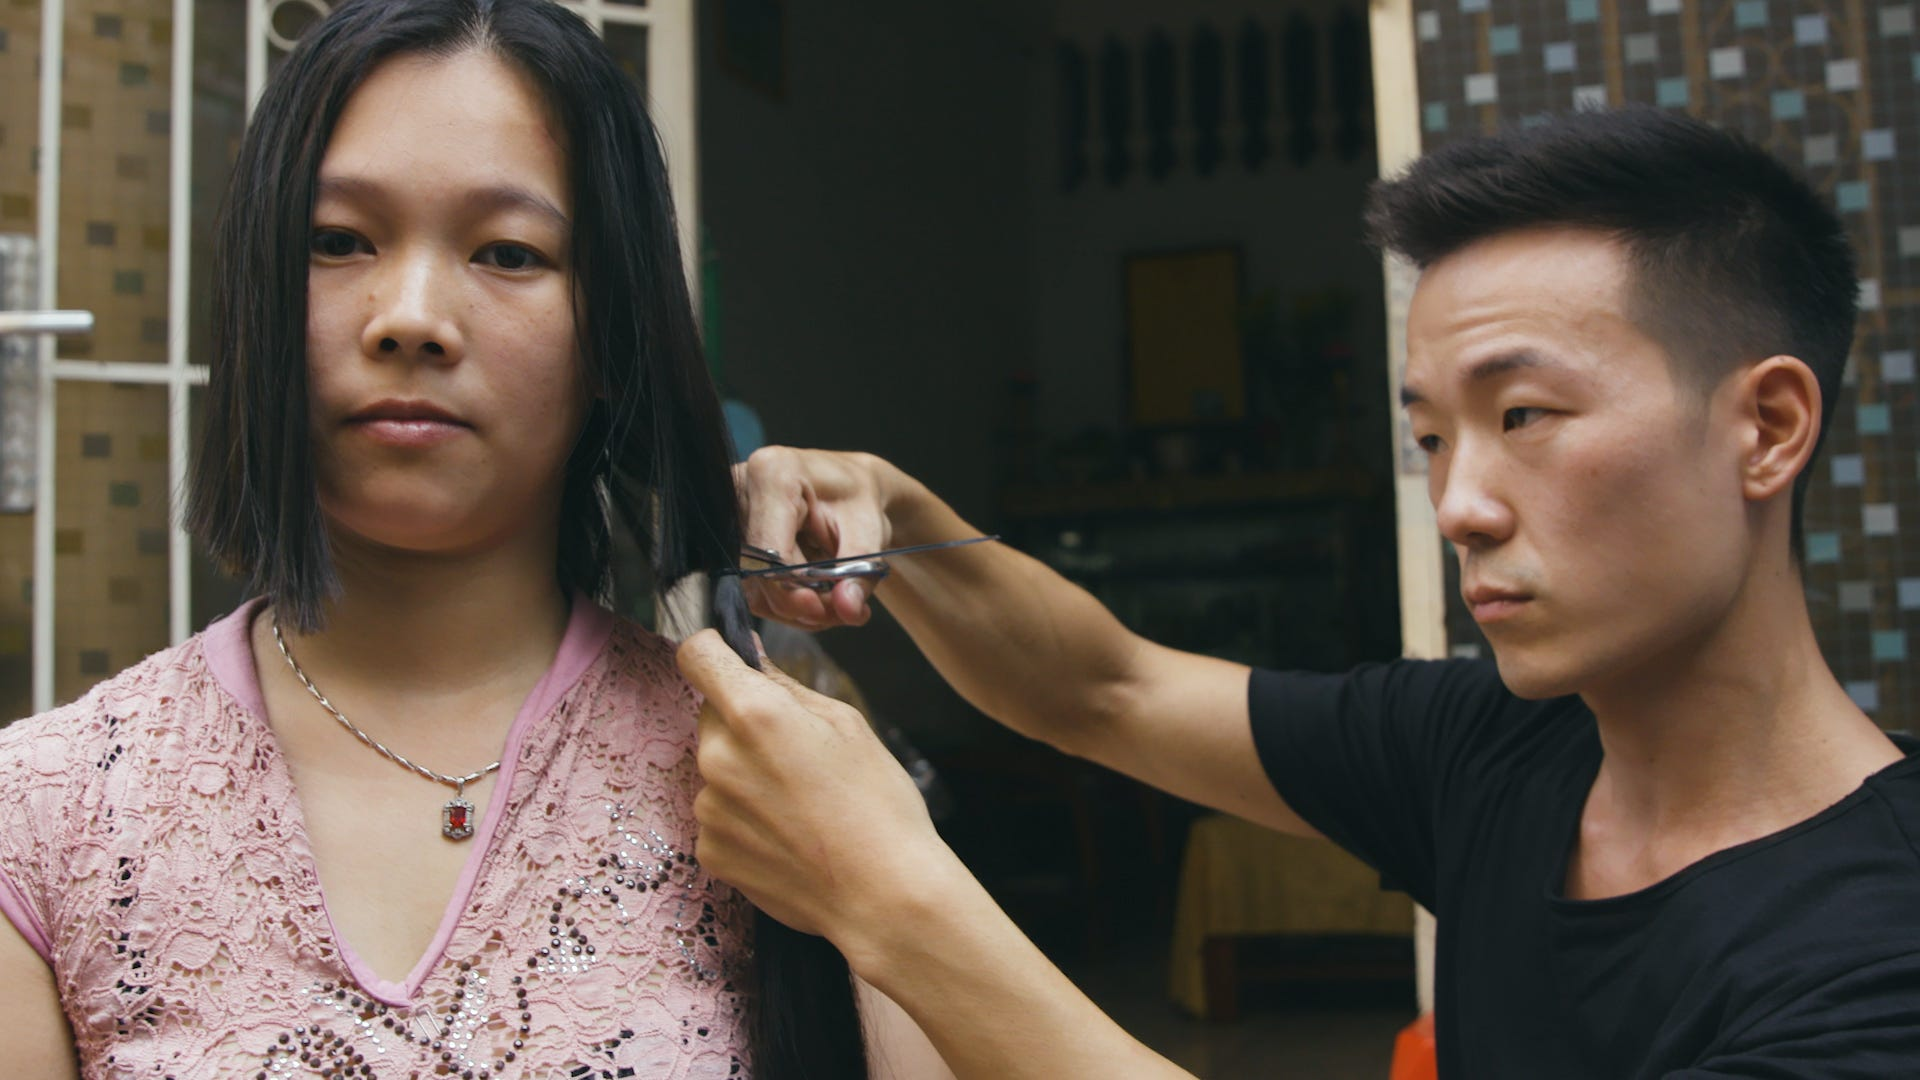 Where Do Real Human Hair Extensions Come From?